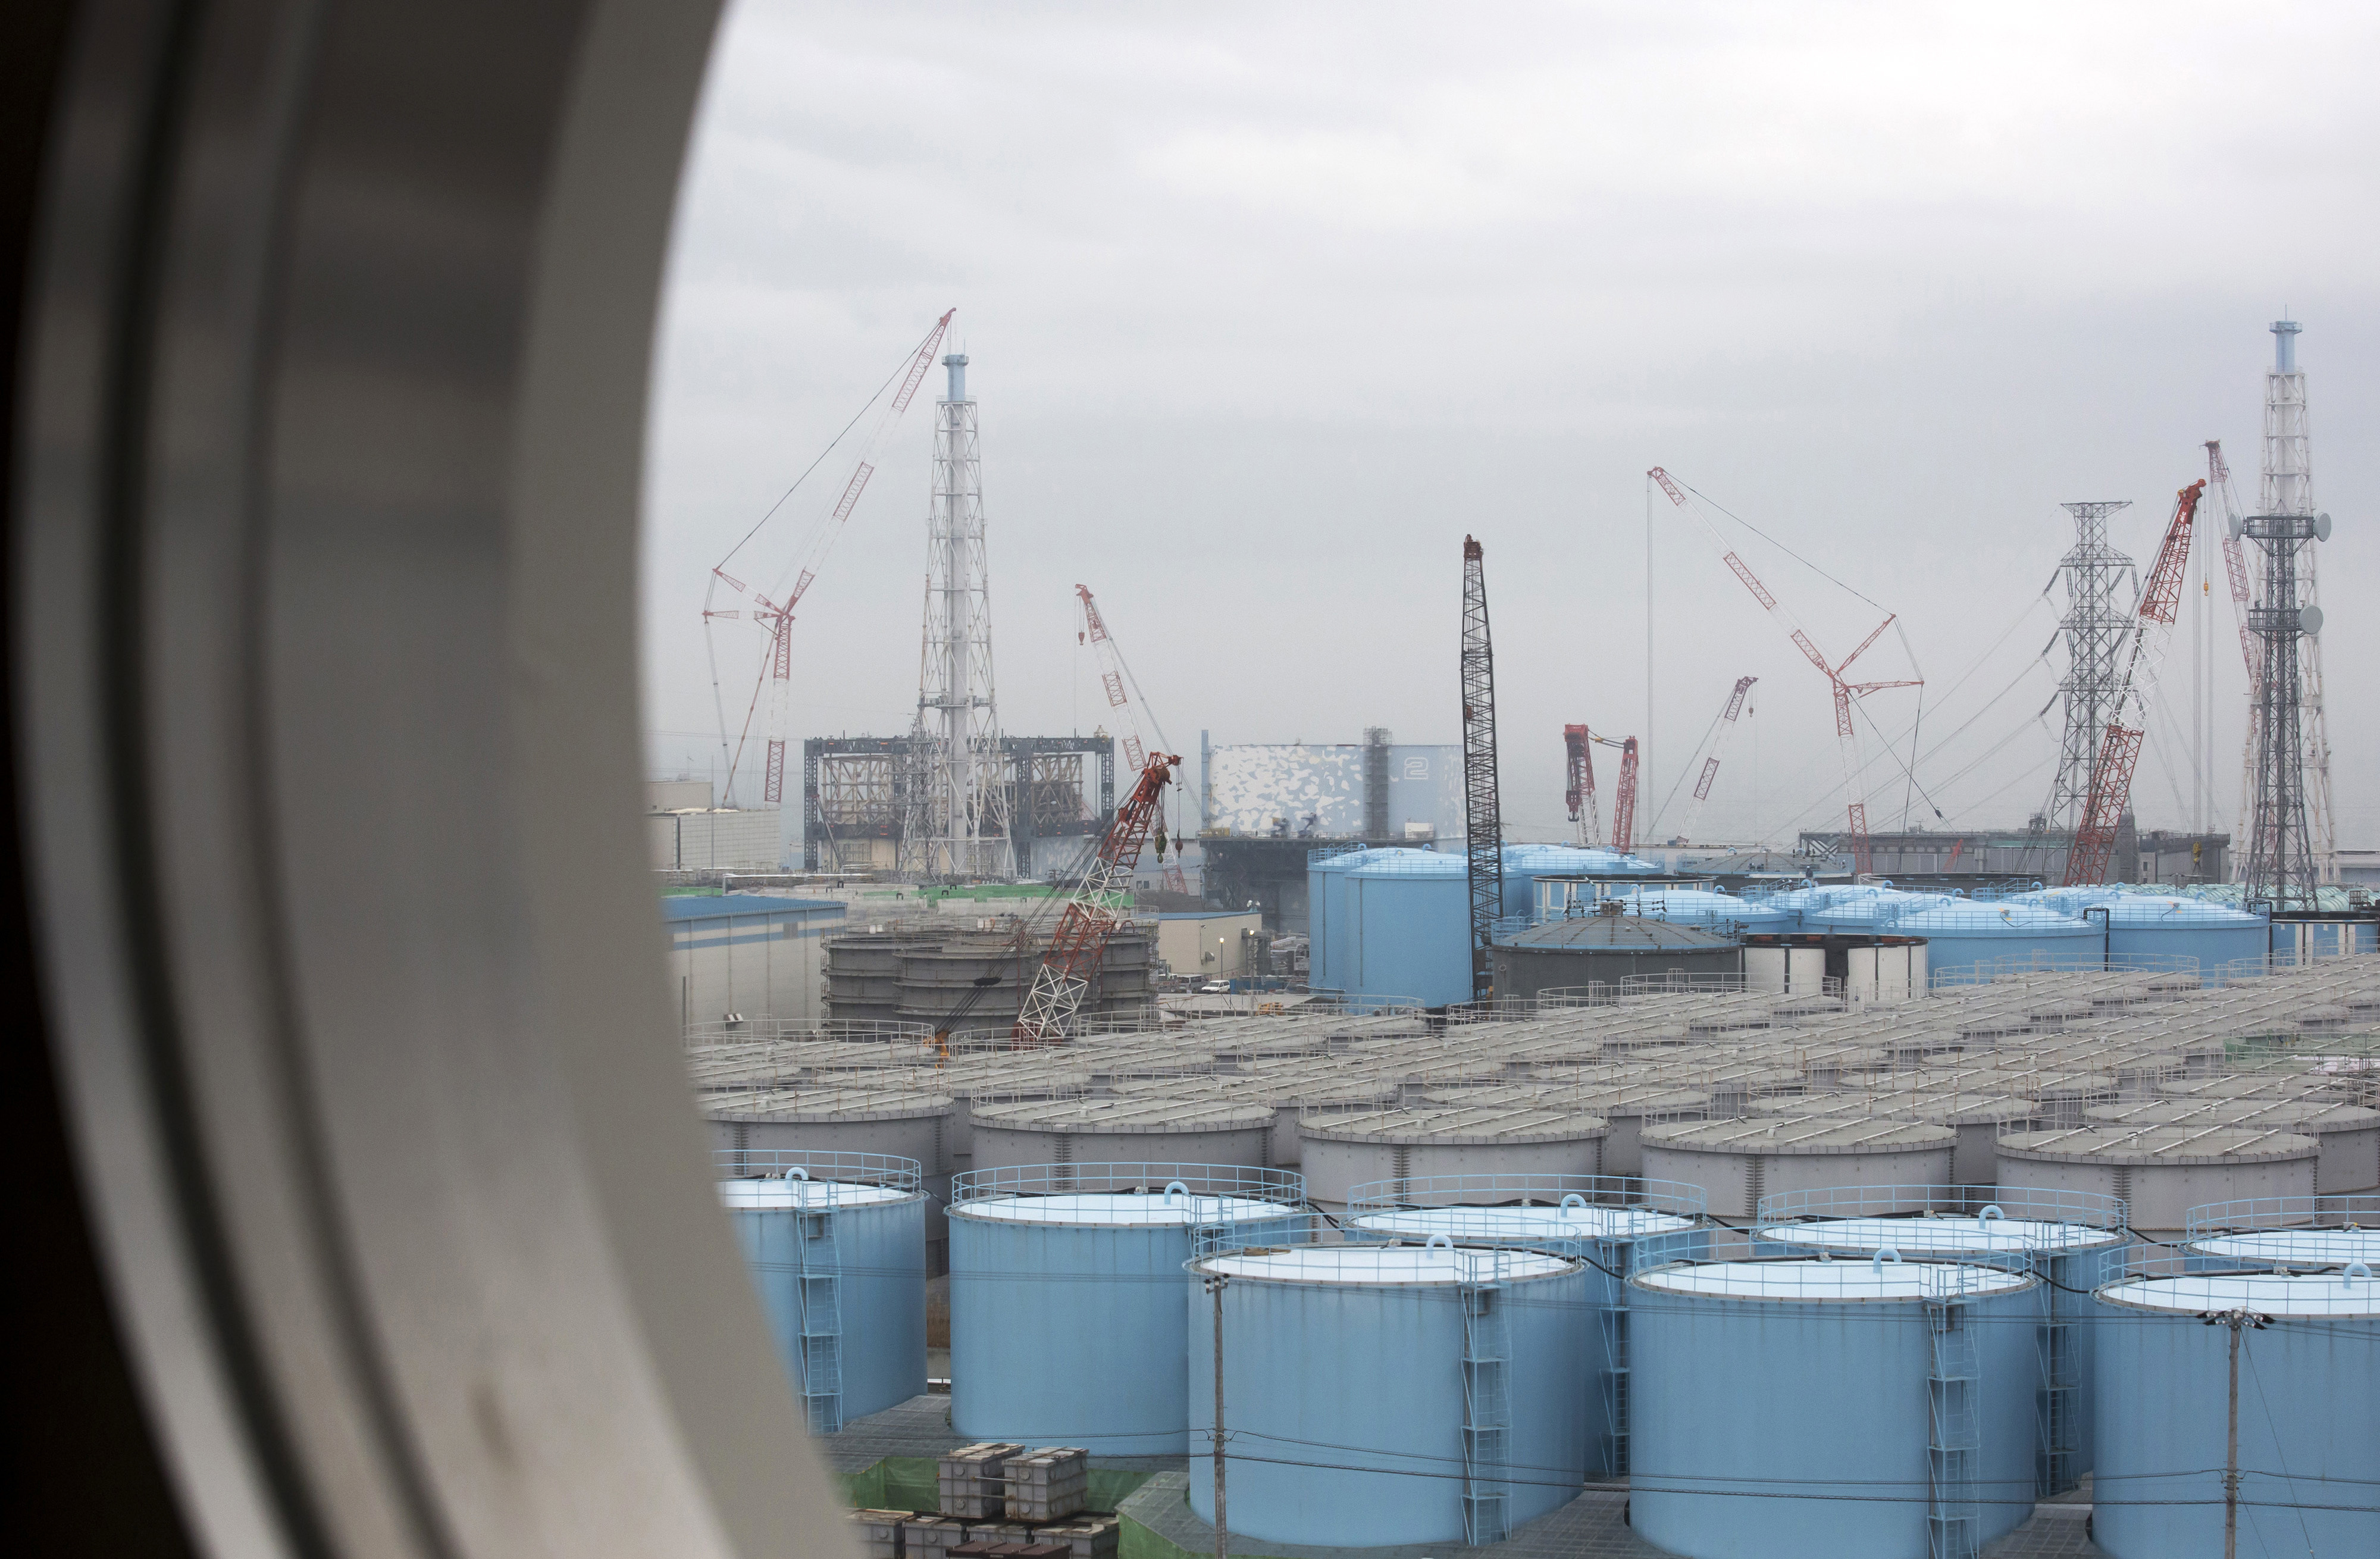 Japan Nuclear-3 FILE - In this Feb. 23, 2017, file photo, storage tanks for contaminated water are seen through a window of a building during a media tour to the tsunami-crippled Fukushima Dai-ichi nuclear power plant of the Tokyo Electric Power Co. (TEPCO) in Okuma town, Fukushima prefecture, Japan. Massive amounts of radiation-contaminated water that has been processed and stored in hundreds of tanks at the plant are hindering decommissioning work and pose a safety risk in case another massive quake or tsunami strikes. TEPCO needs to release the water - which contains radioactive tritium that is not removable but considered not harmful in small amounts - into the Pacific Ocean, TEPCO's new Chairman Takashi Kawamura said. (Tomohiro Ohsumi/Pool Photo via AP, File)